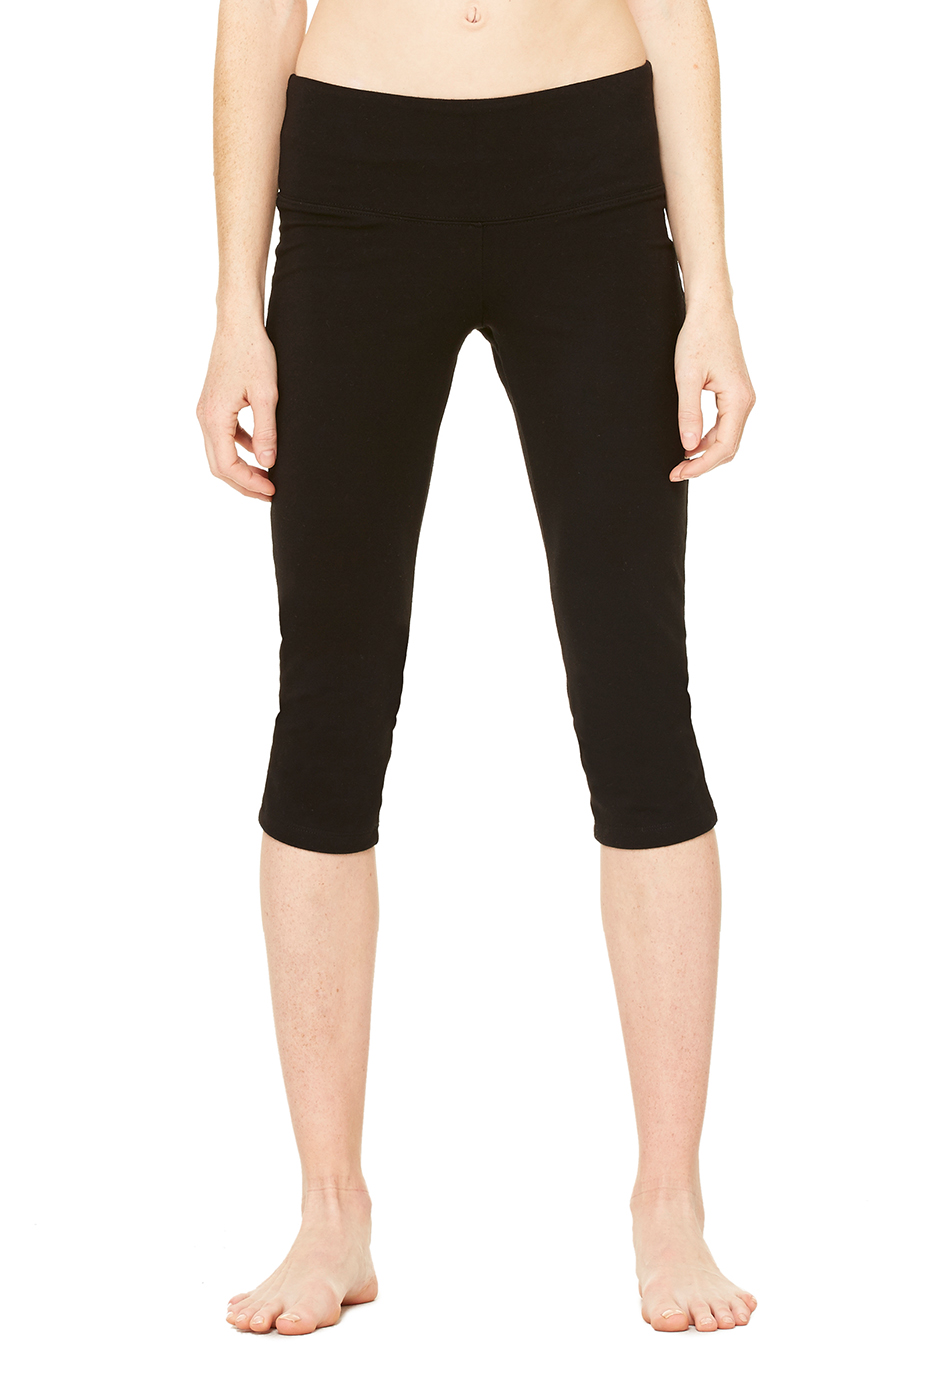 Women's Cotton Spandex Capri Fit Leggings | Bella-Canvas